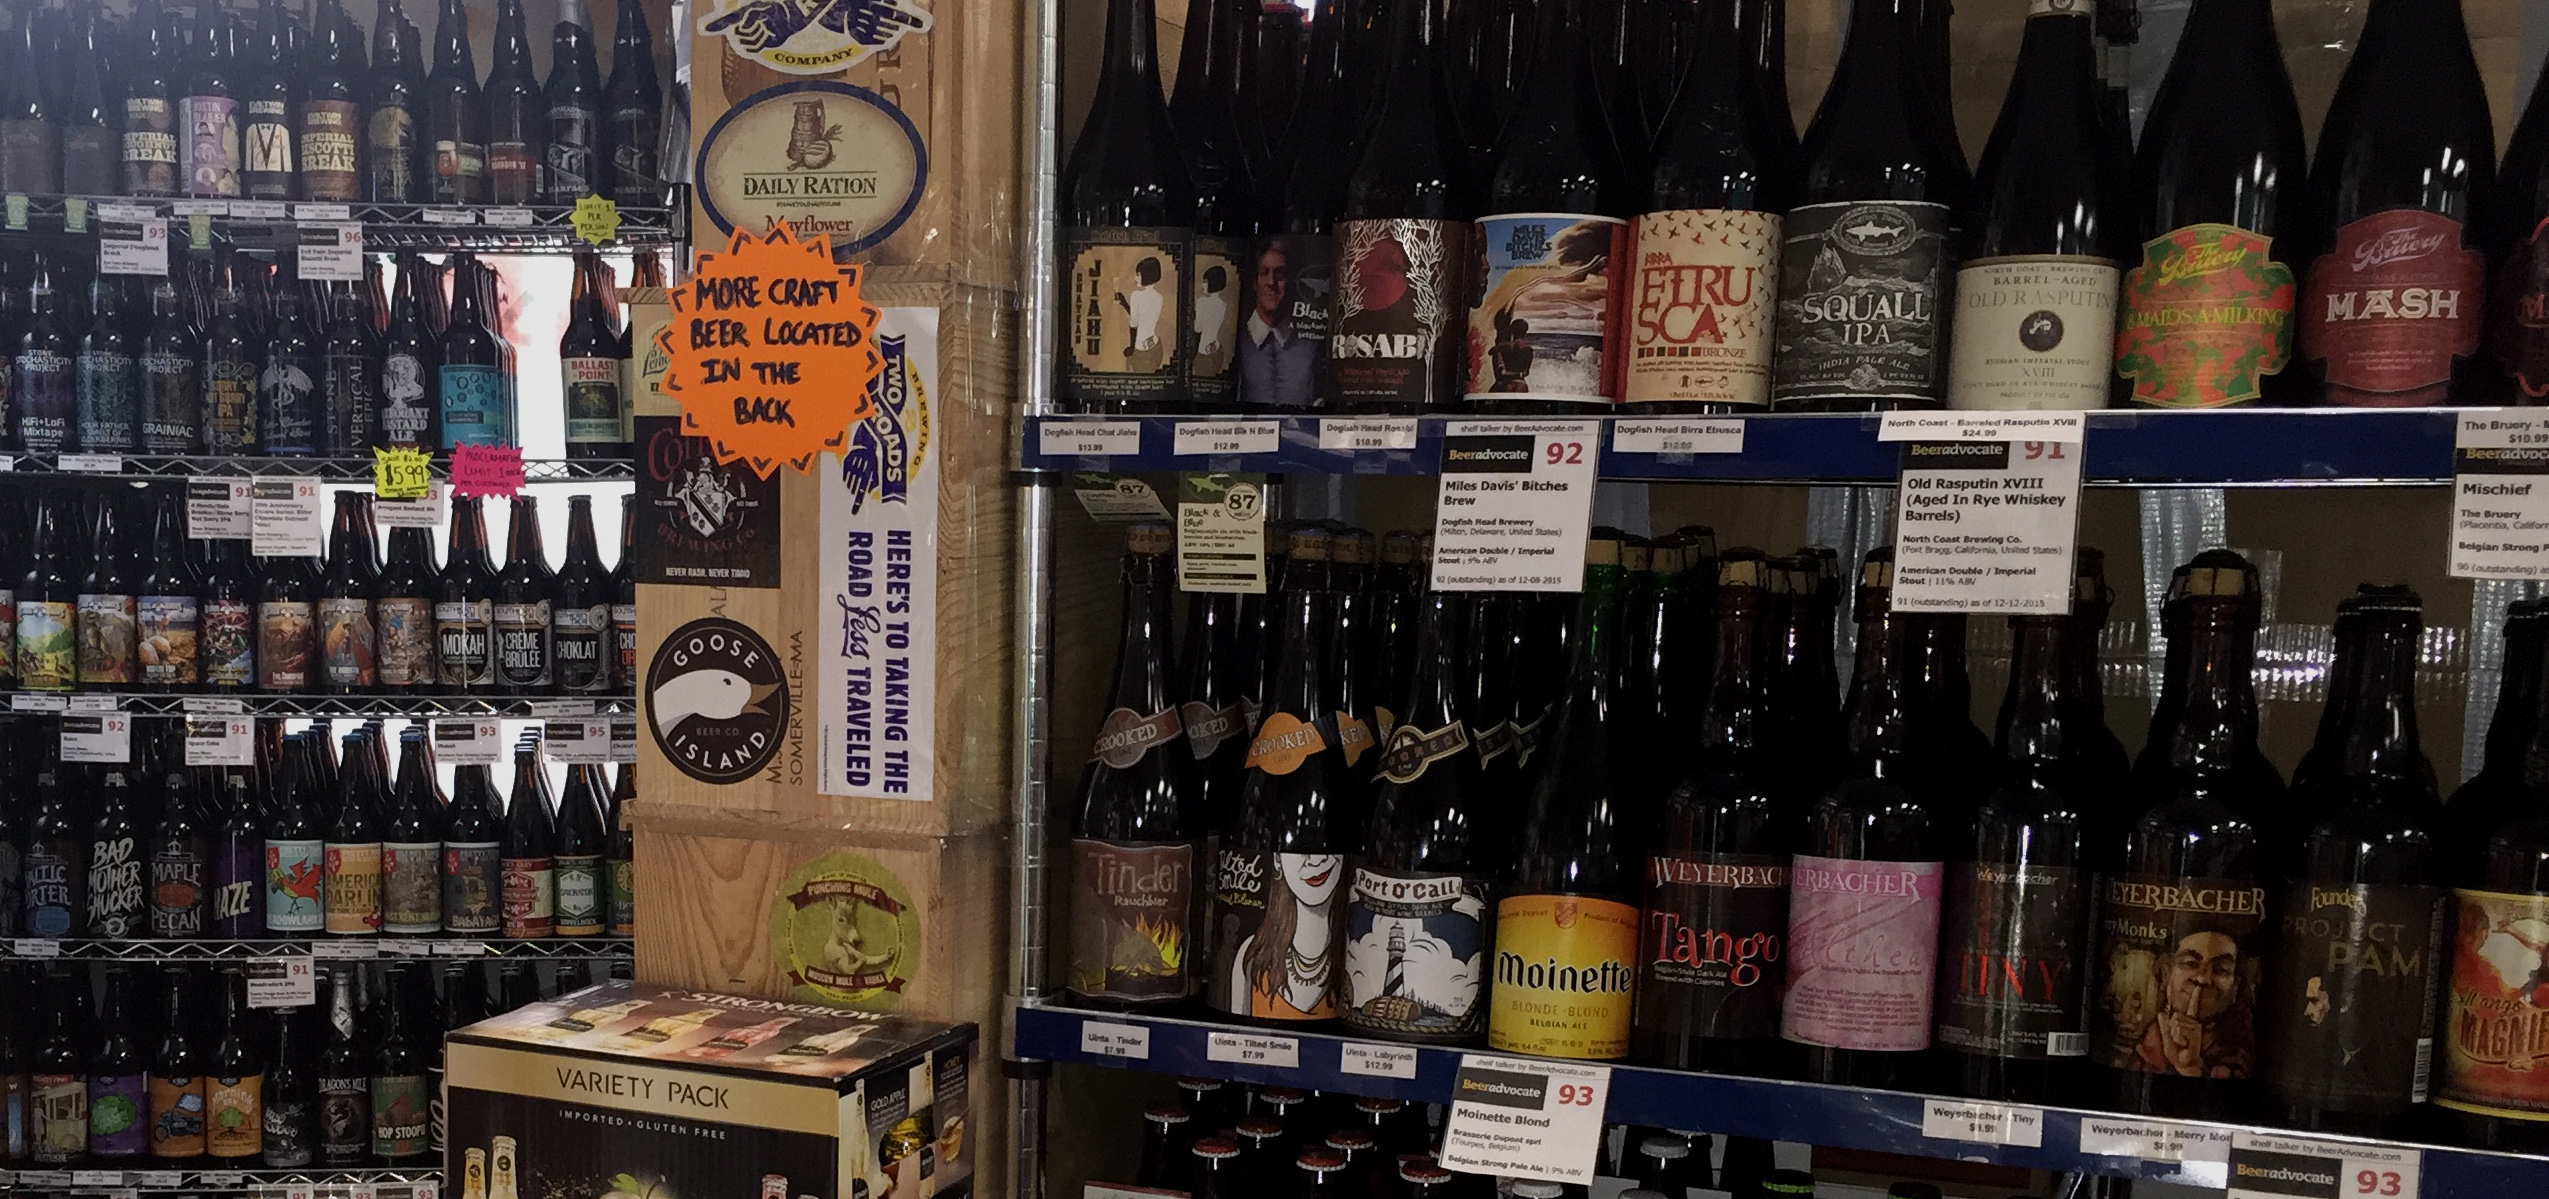 6777a6ac1c3 Newport, Rhode Island's Craft Beer Store - Bridge Liquors